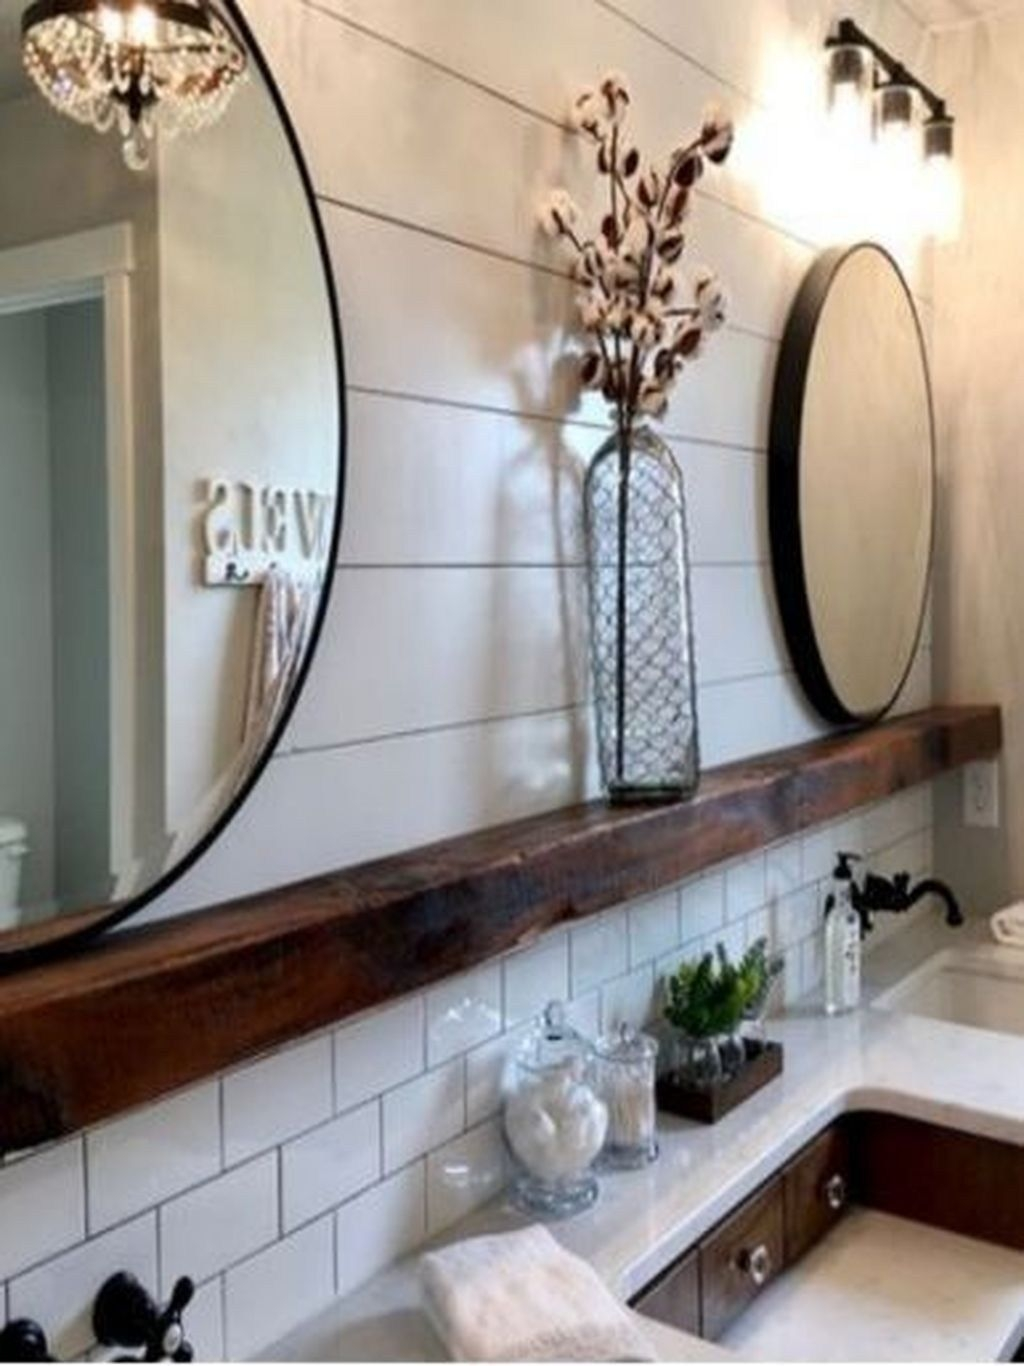 Marvelous Master Bathroom Ideas For Home32